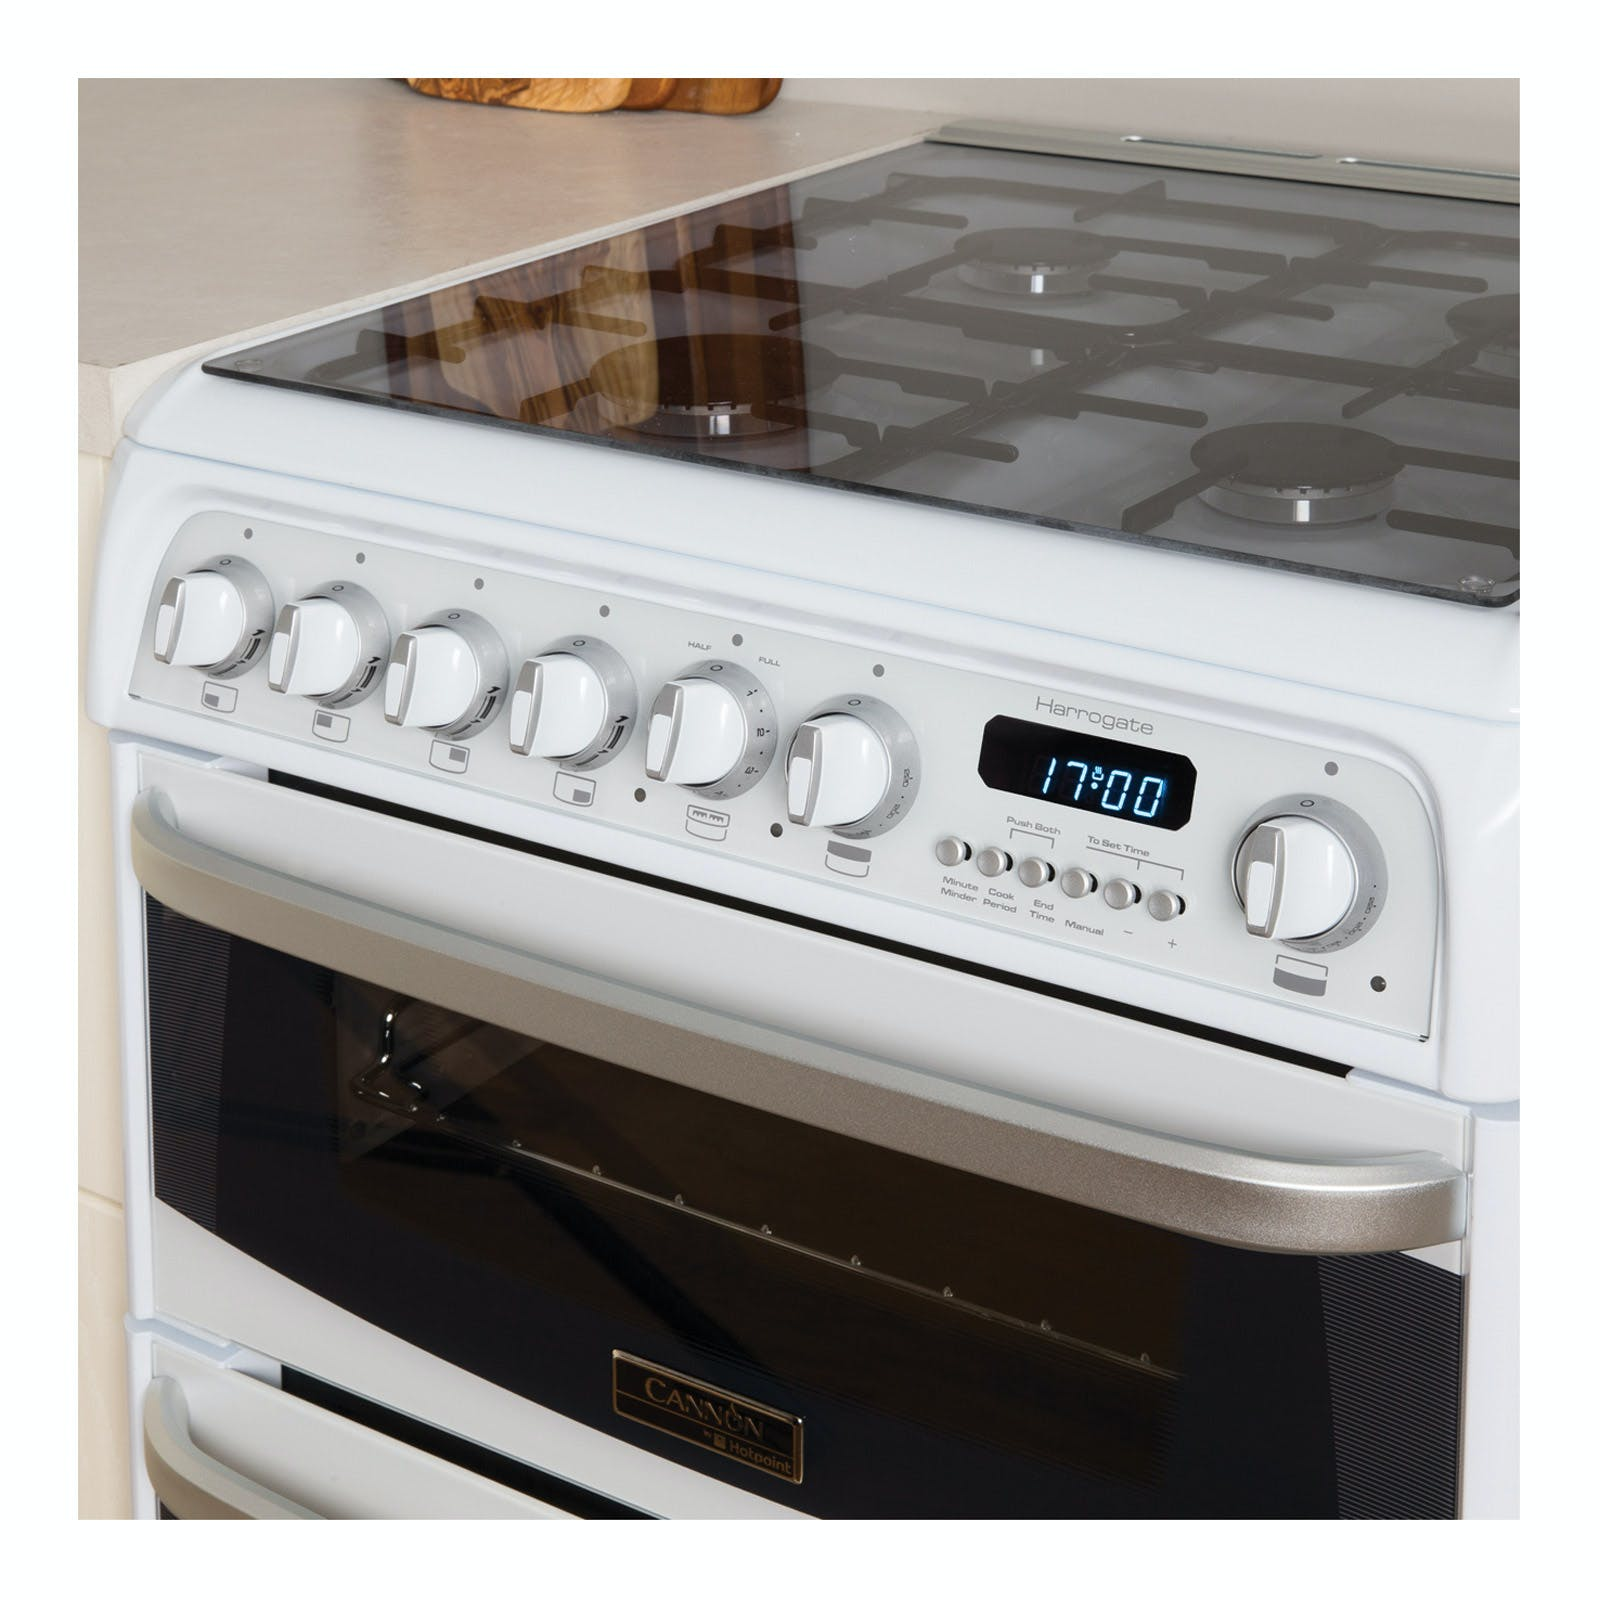 Cannon CH60GCIW 60cm CARRICK Gas Cooker in White, Double Oven A+ Rated